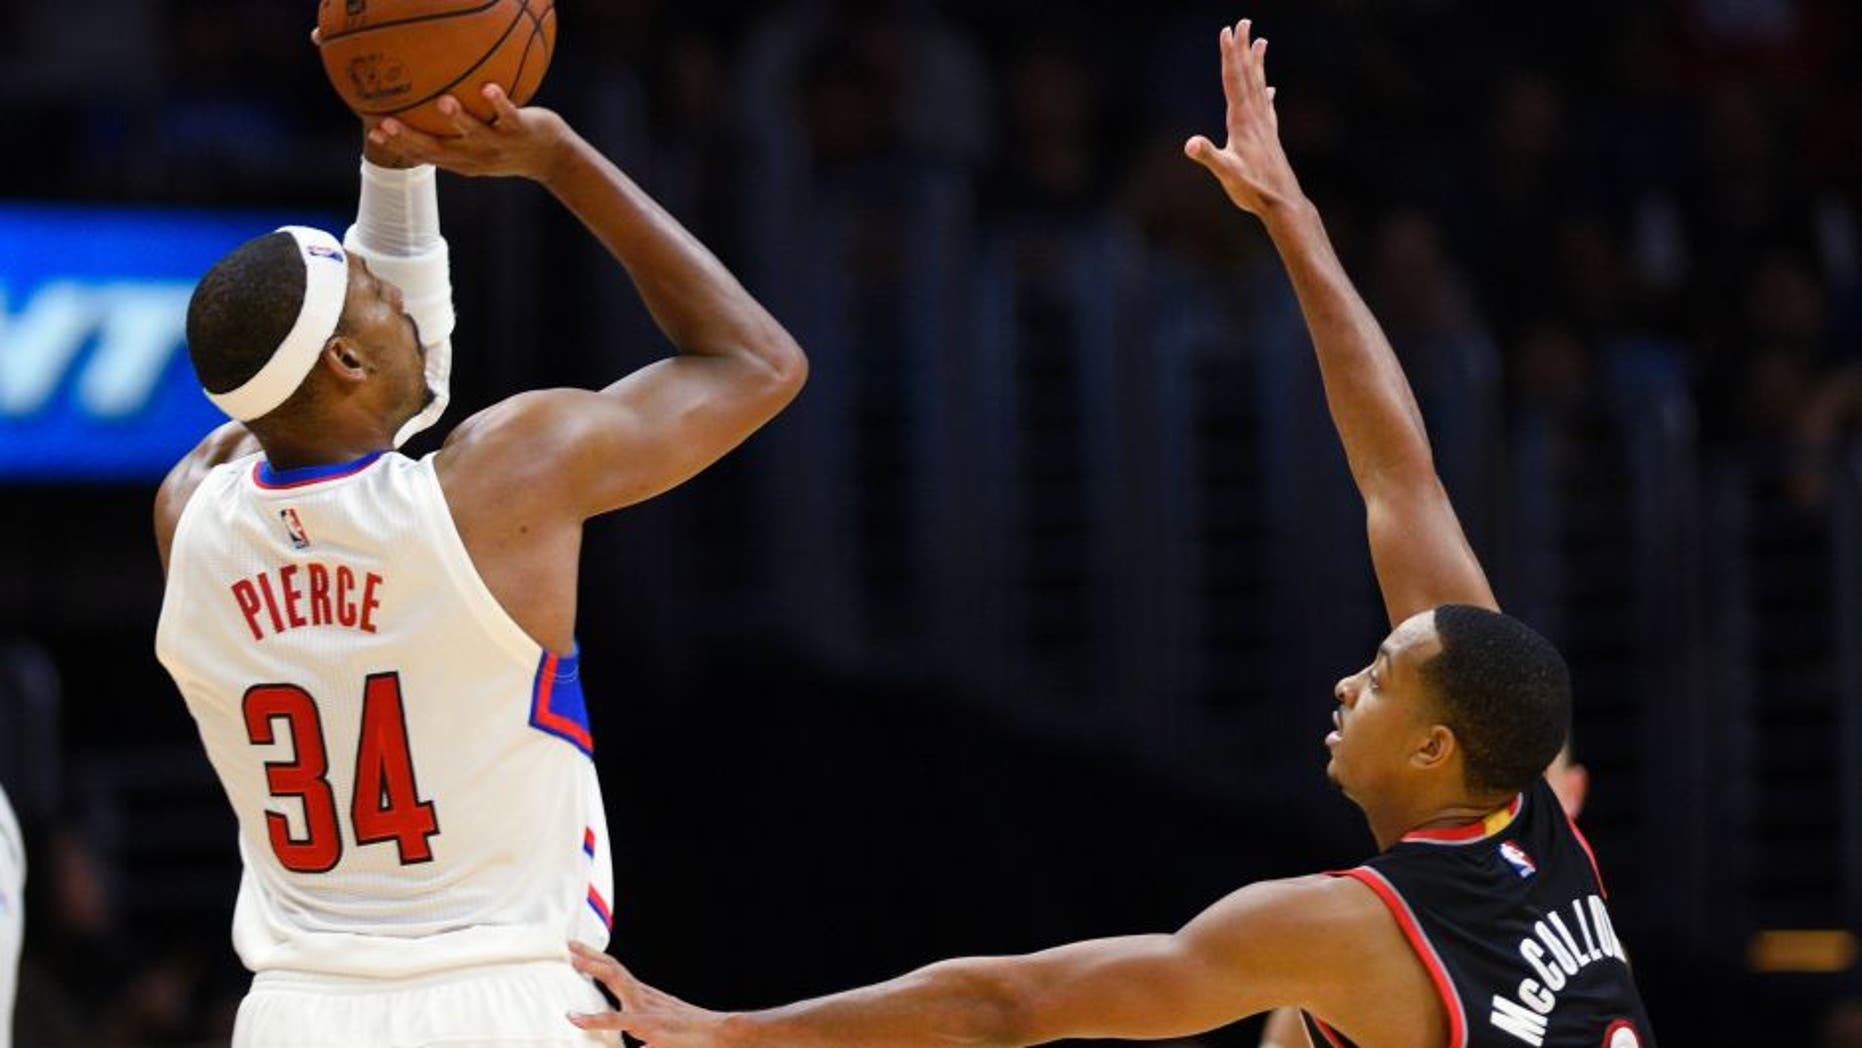 Los Angeles Clippers' Paul Pierce shoots as Portland Trail Blazers' CJ McCollum defends during the fourth quarter of an NBA preseason basketball game in Los Angeles, Thursday, Oct. 22, 2015. The Clippers won 115-109. (AP Photo/Kelvin Kuo)